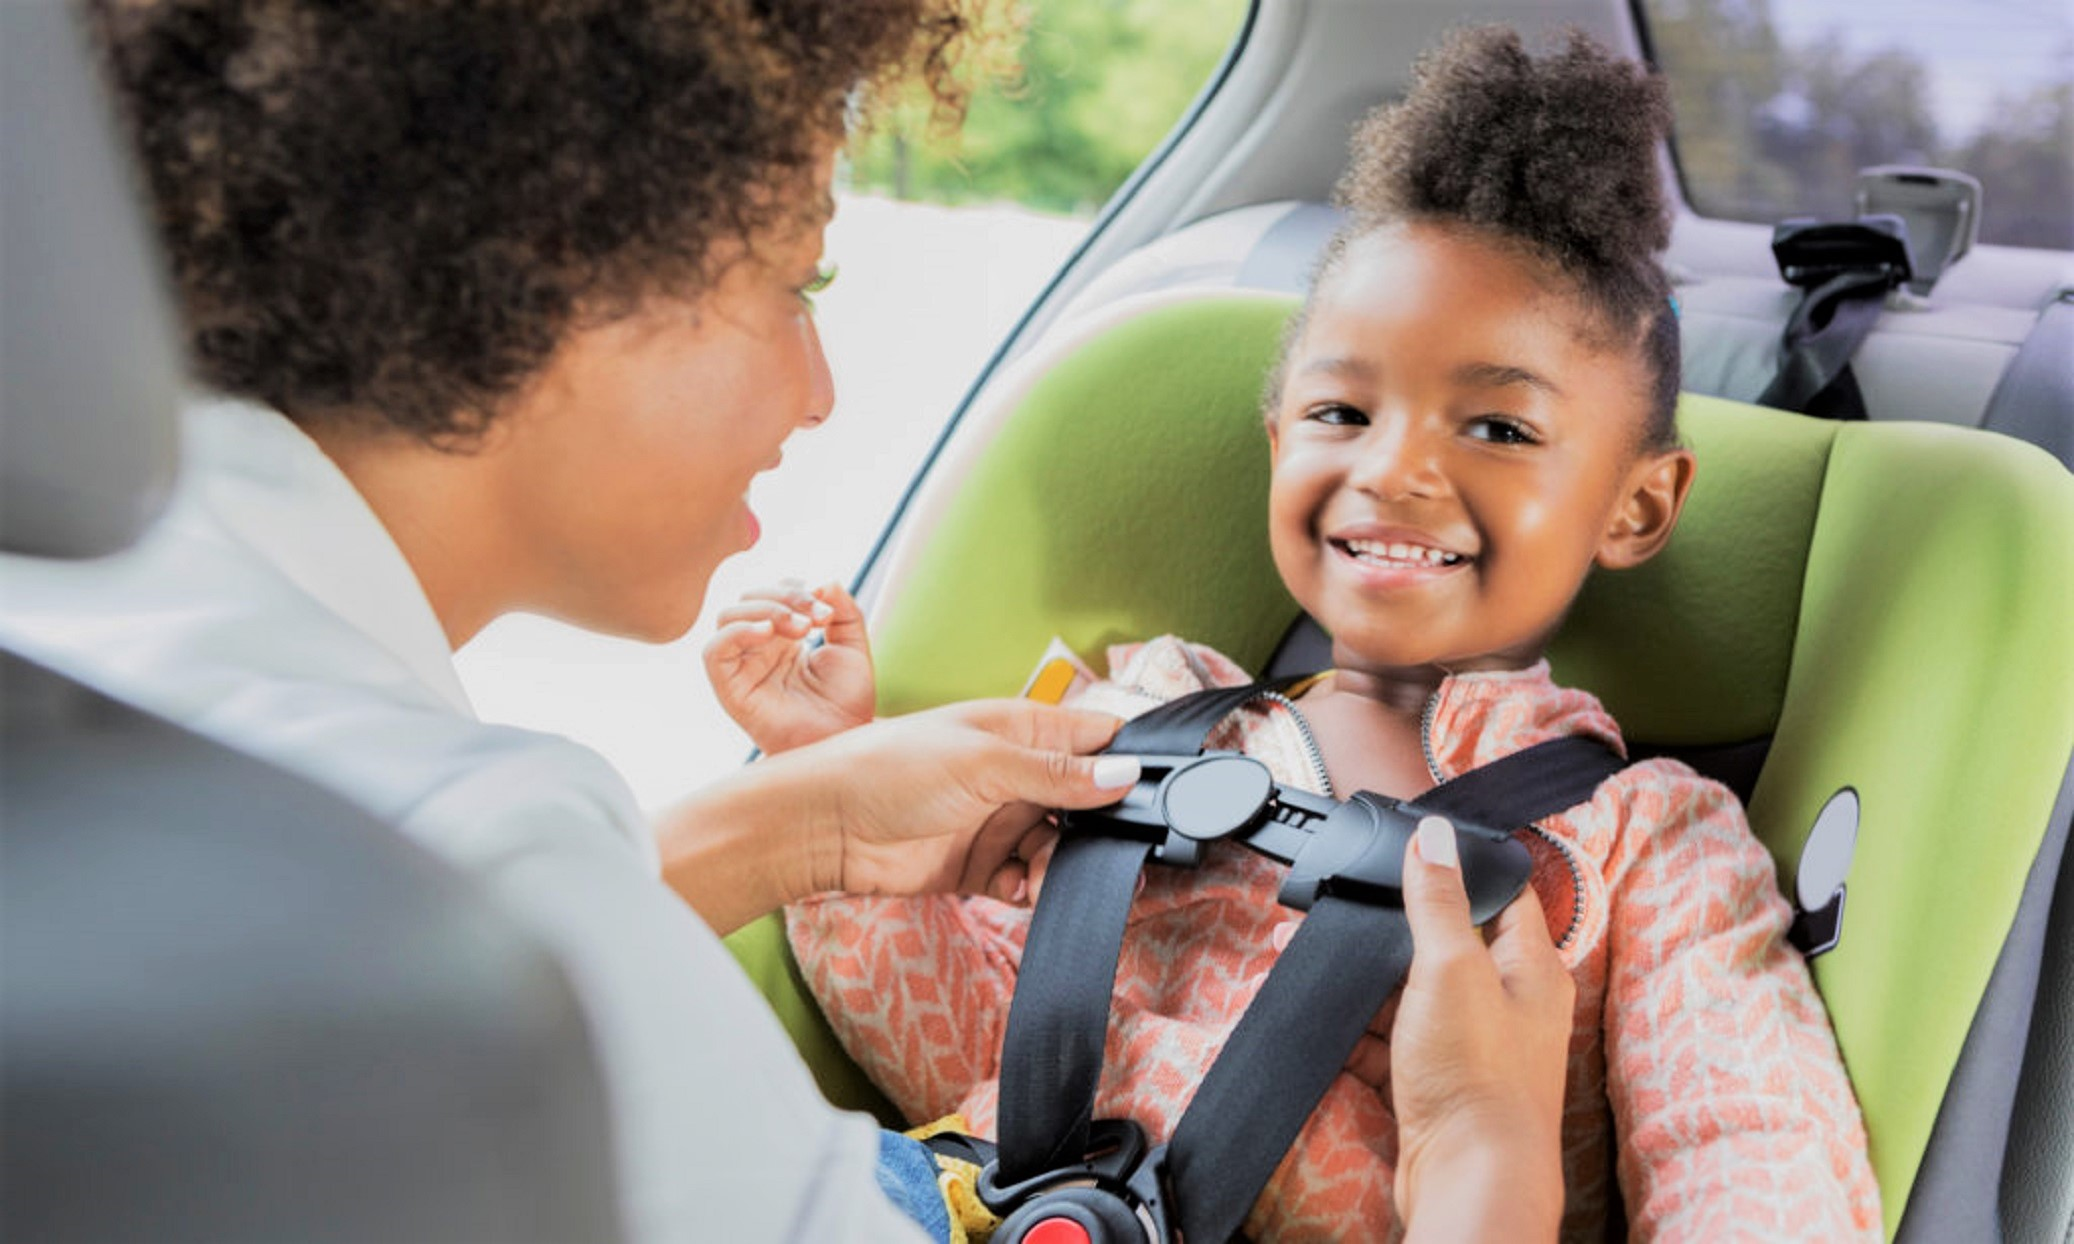 Celebrate National Baby Safety Month By Trading In Your Used Car Seat At Walmart